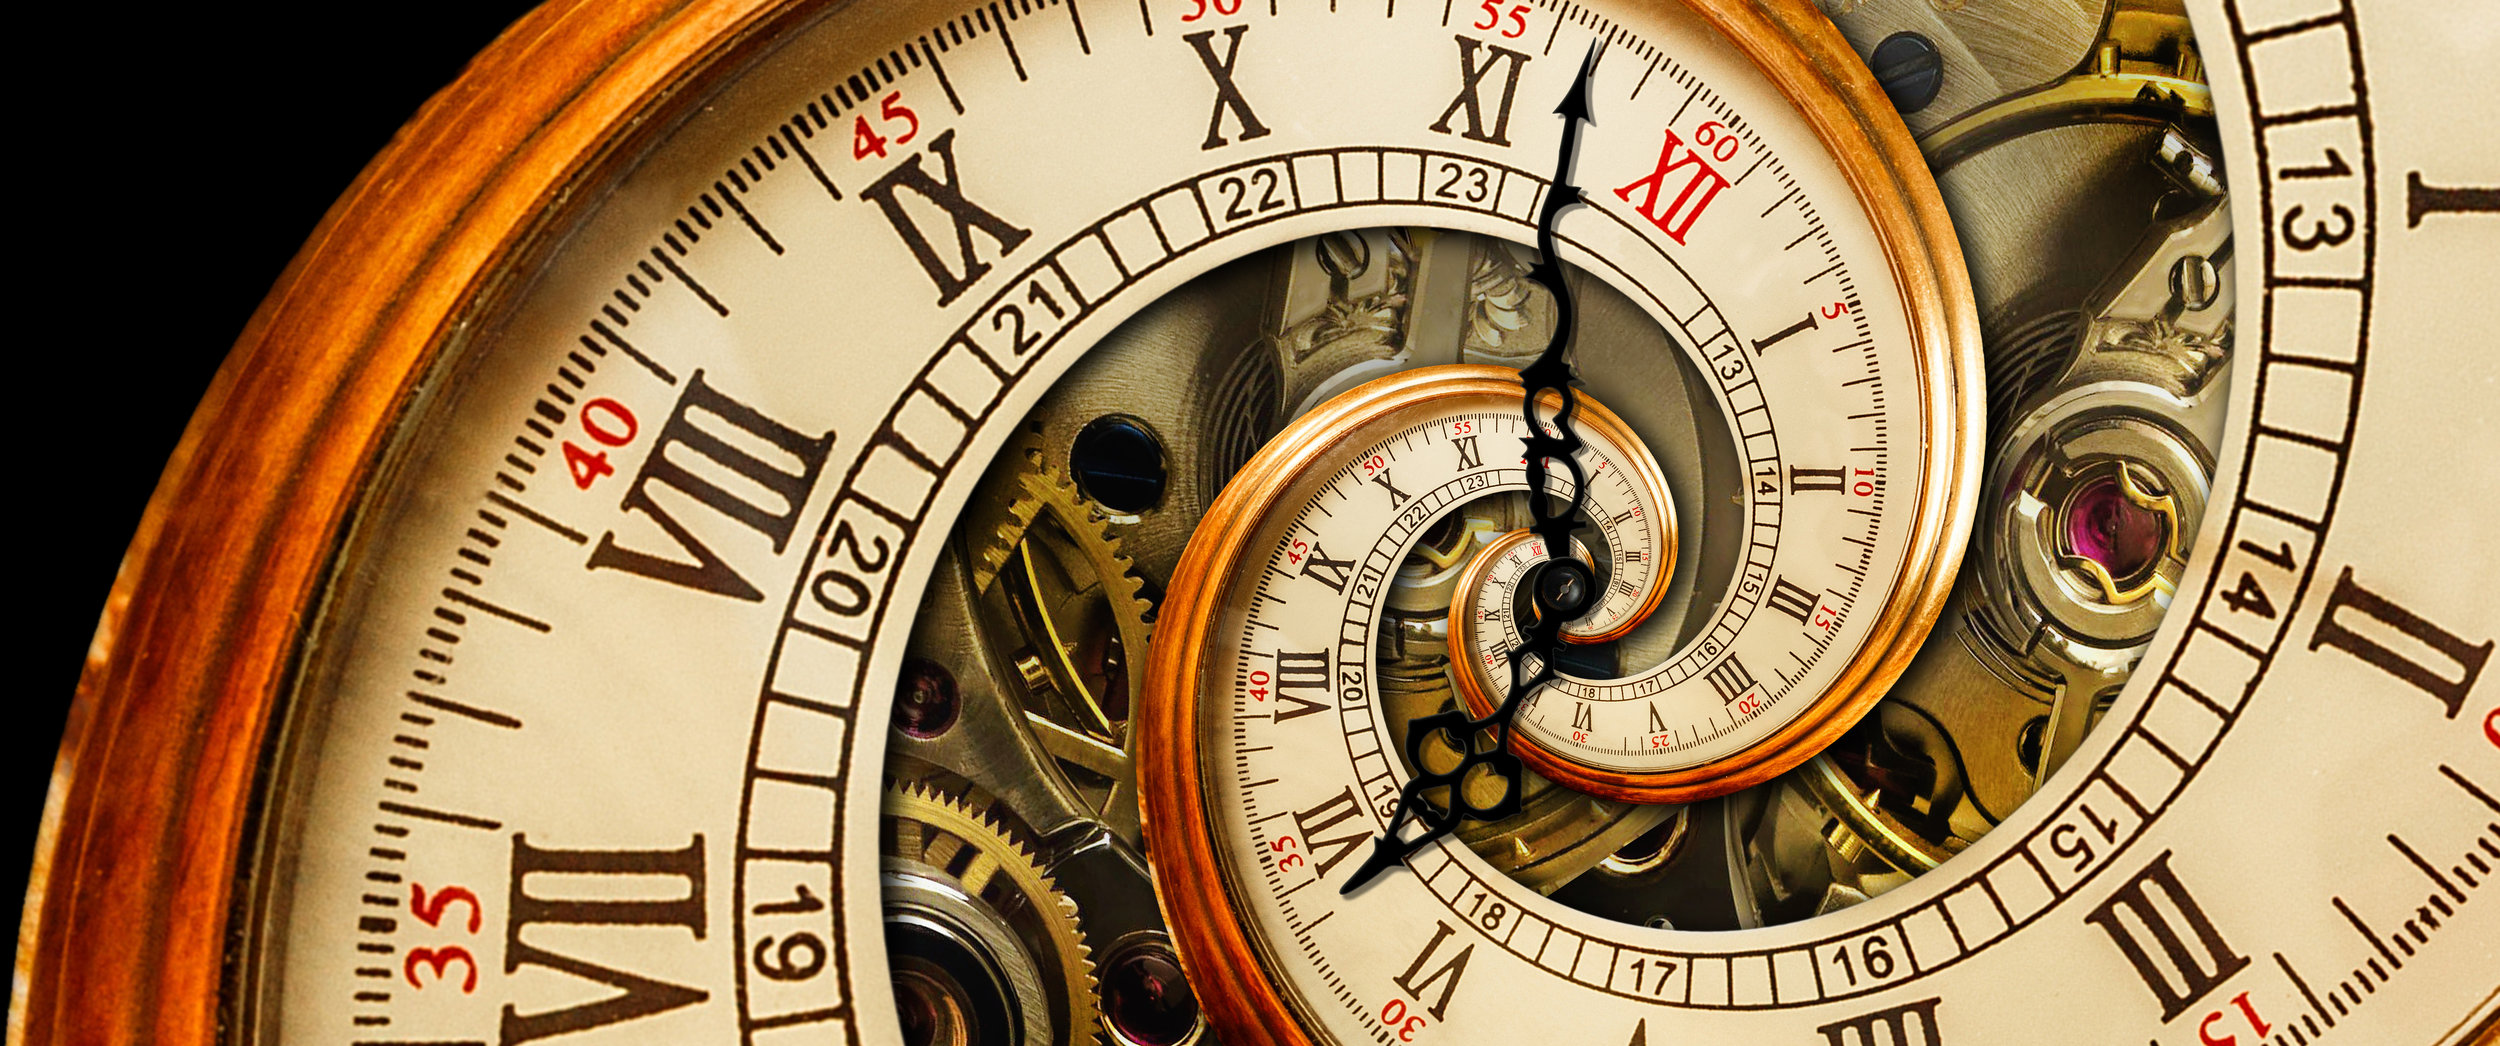 The Mysterious Connection Between Cyclic Imaginary Time and Temperature